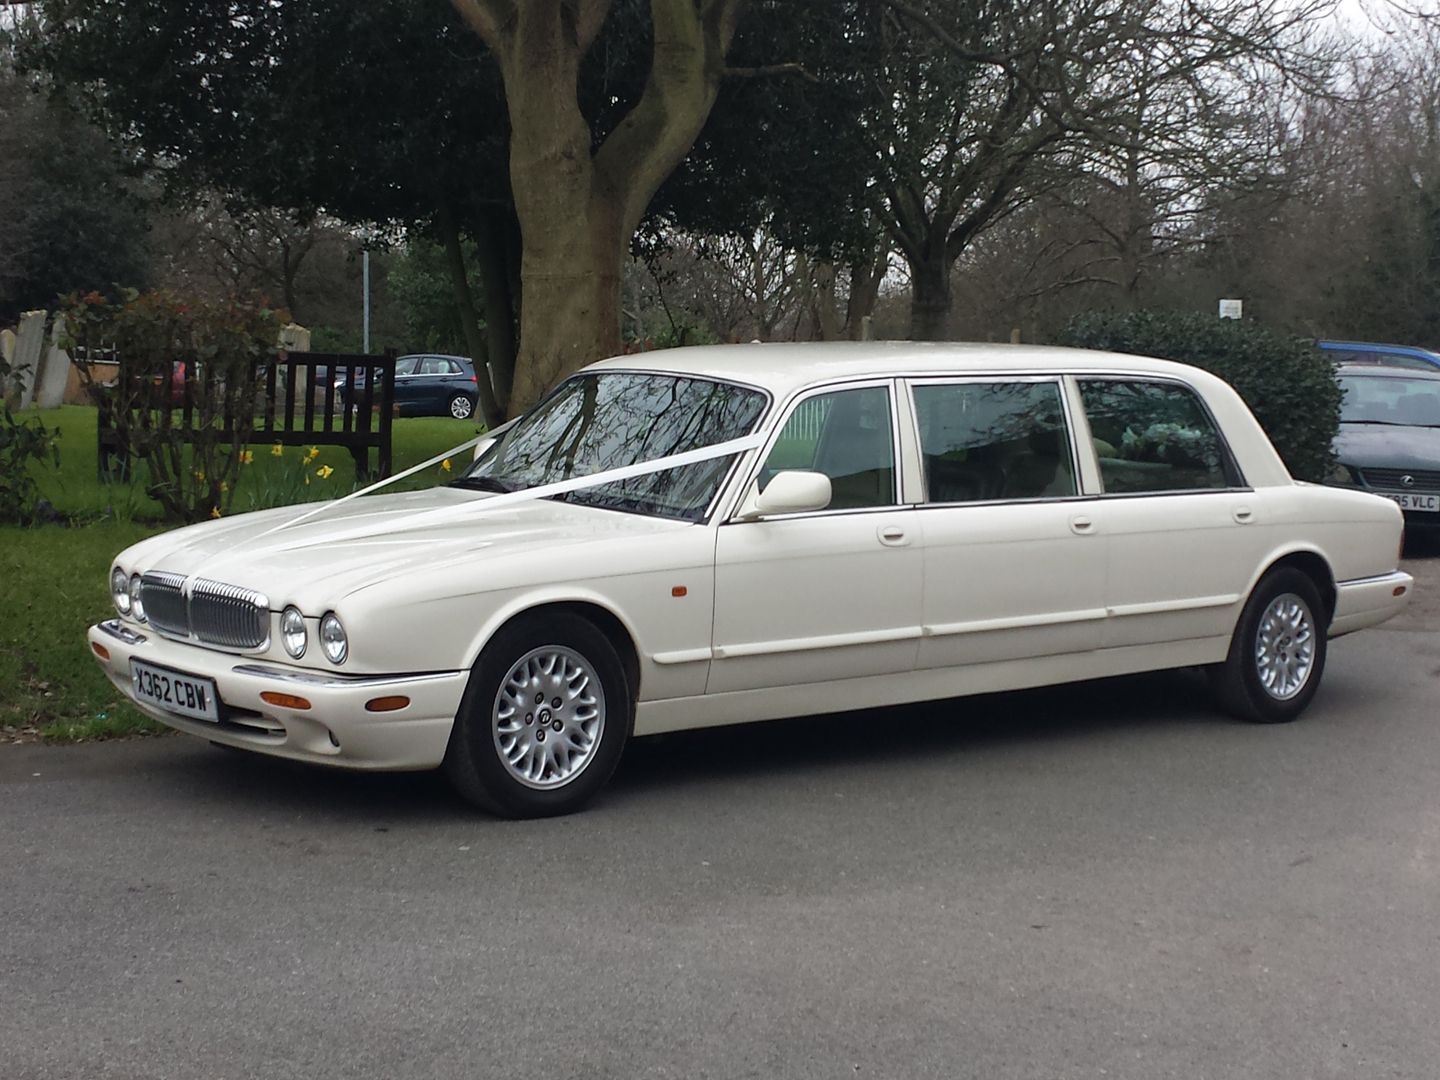 Daimler Sovereign 7 Seater Wedding Car Hire Essex Provided By Essex